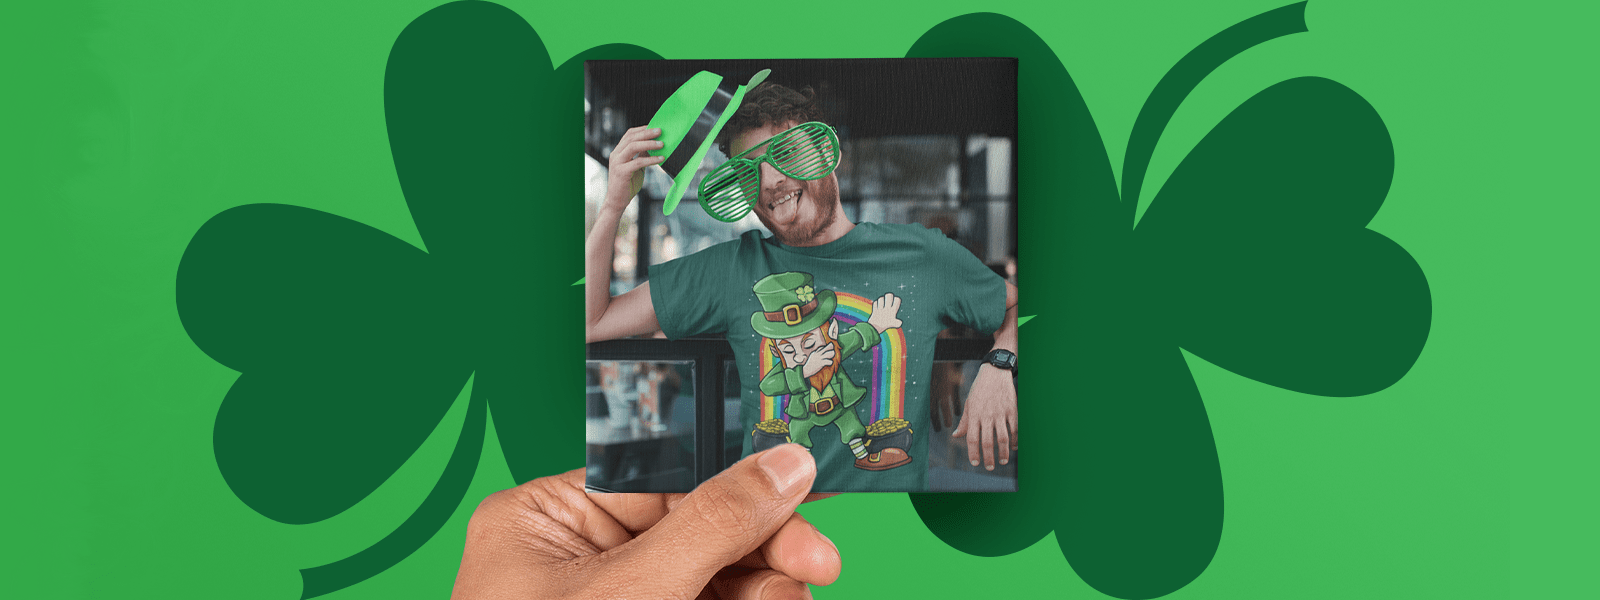 Our Top 10 Picks: St Patrick's Day Shirts